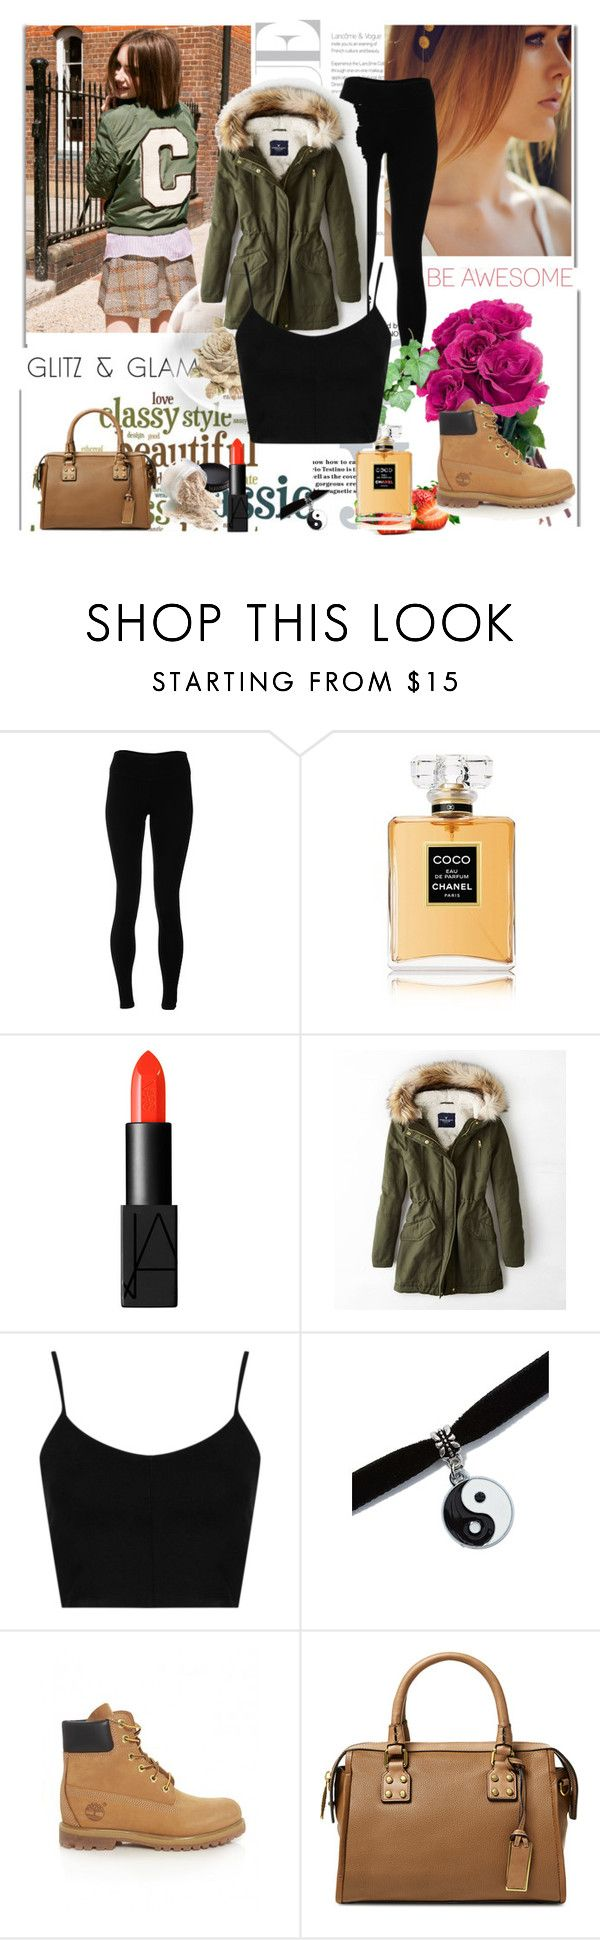 """staying classy"" by rosa-brooks ❤ liked on Polyvore featuring Michael Kors, Marni, Solow, Chanel, NARS Cosmetics, American Eagle Outfitters, Topshop, Timberland, Joy Gryson and 1928"